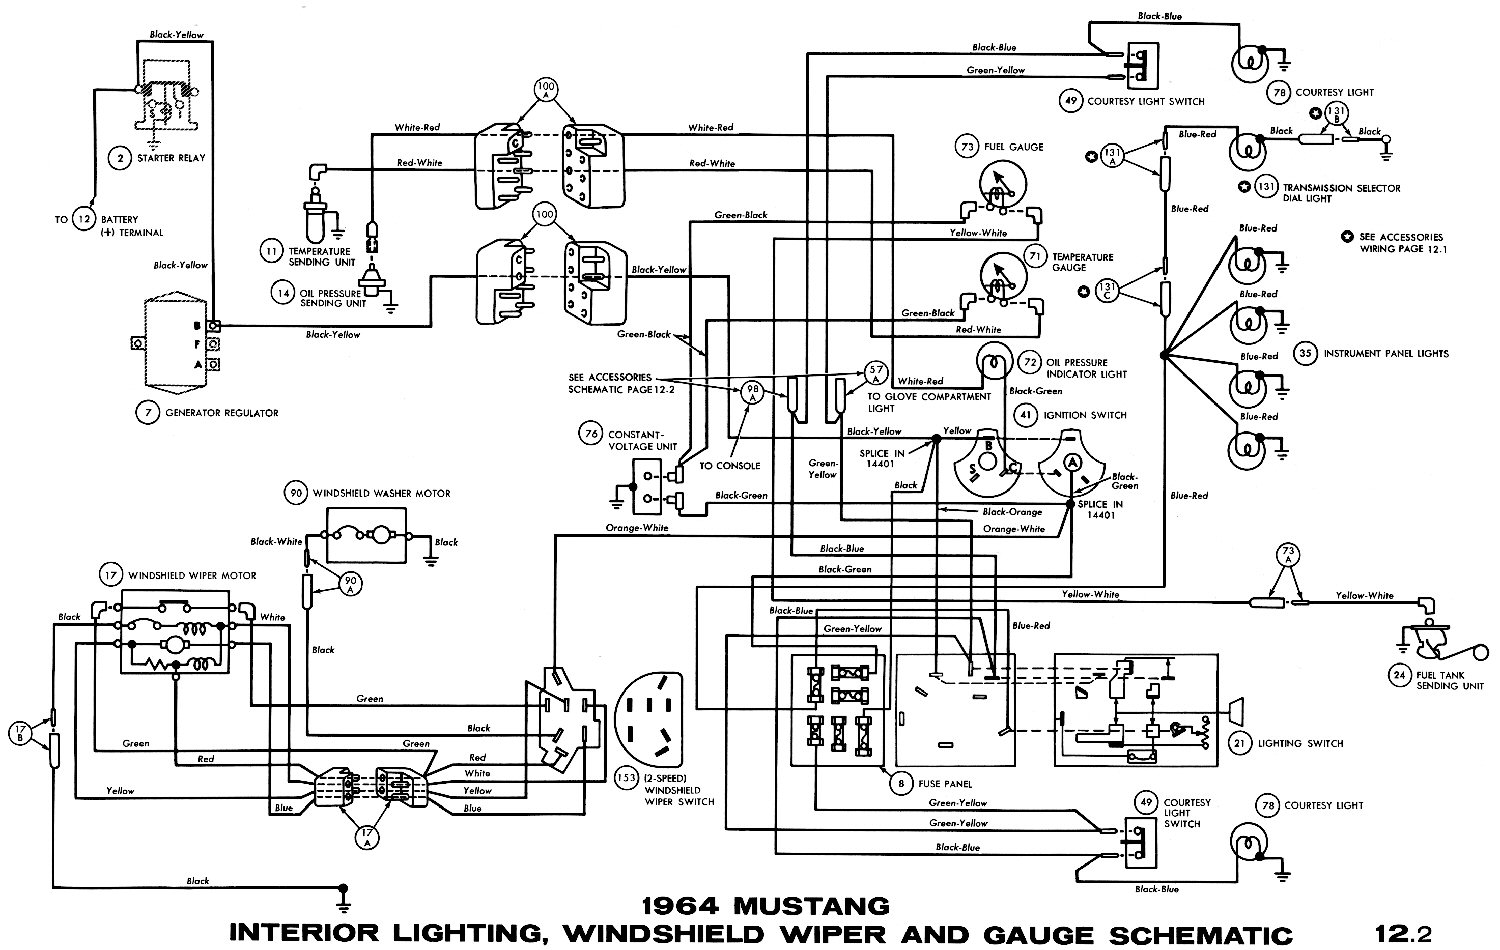 1964k 1964 mustang wiring diagrams average joe restoration ford mustang wiring diagram at arjmand.co